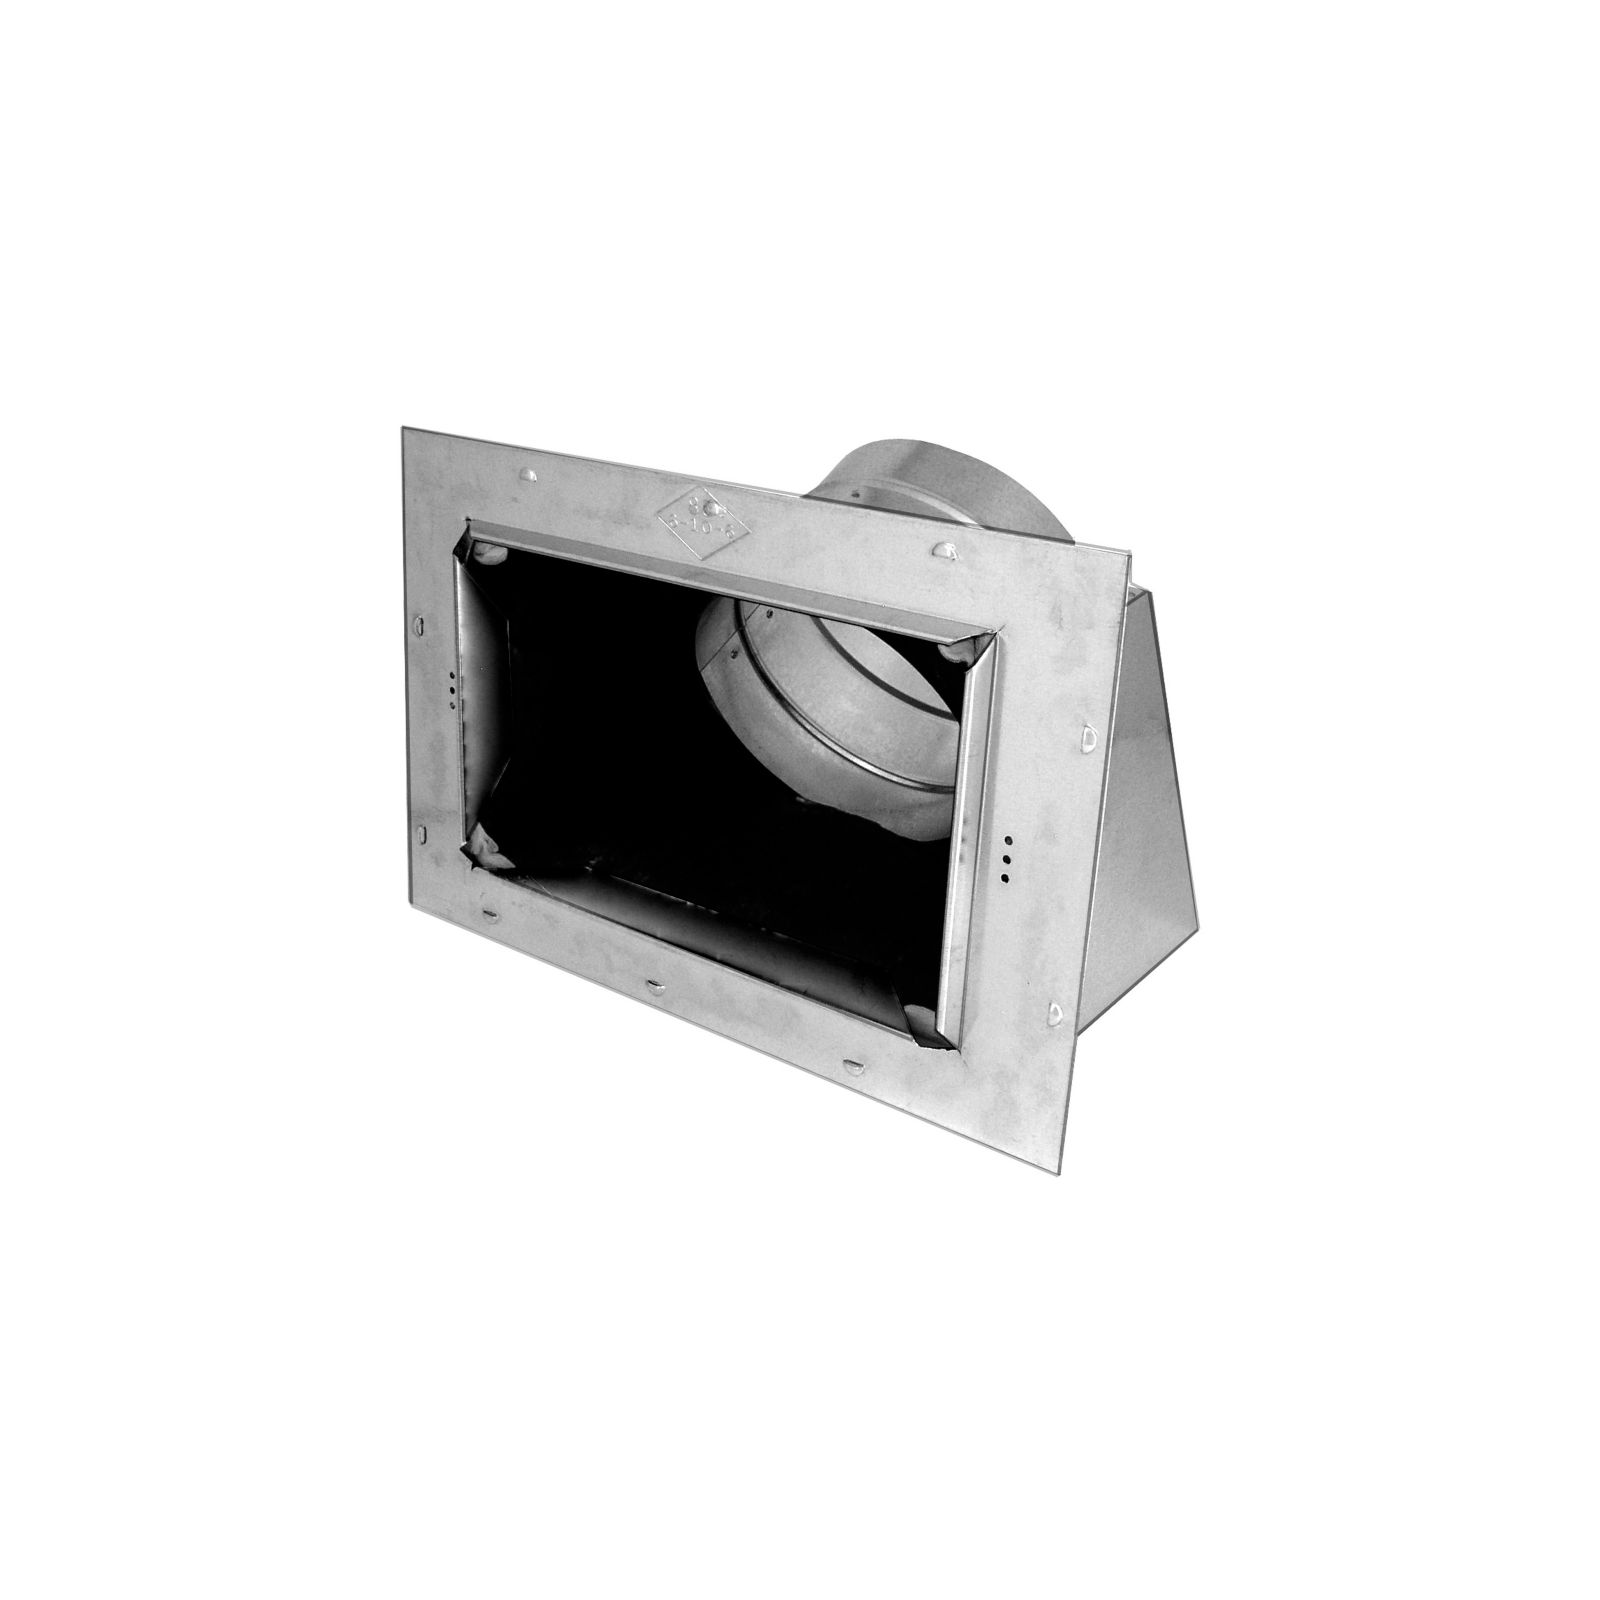 "Southwark 86R84104 - Insulated Ceiling Box Slant Top With Flange and Outlet, 4"" X 10"" X 4"""